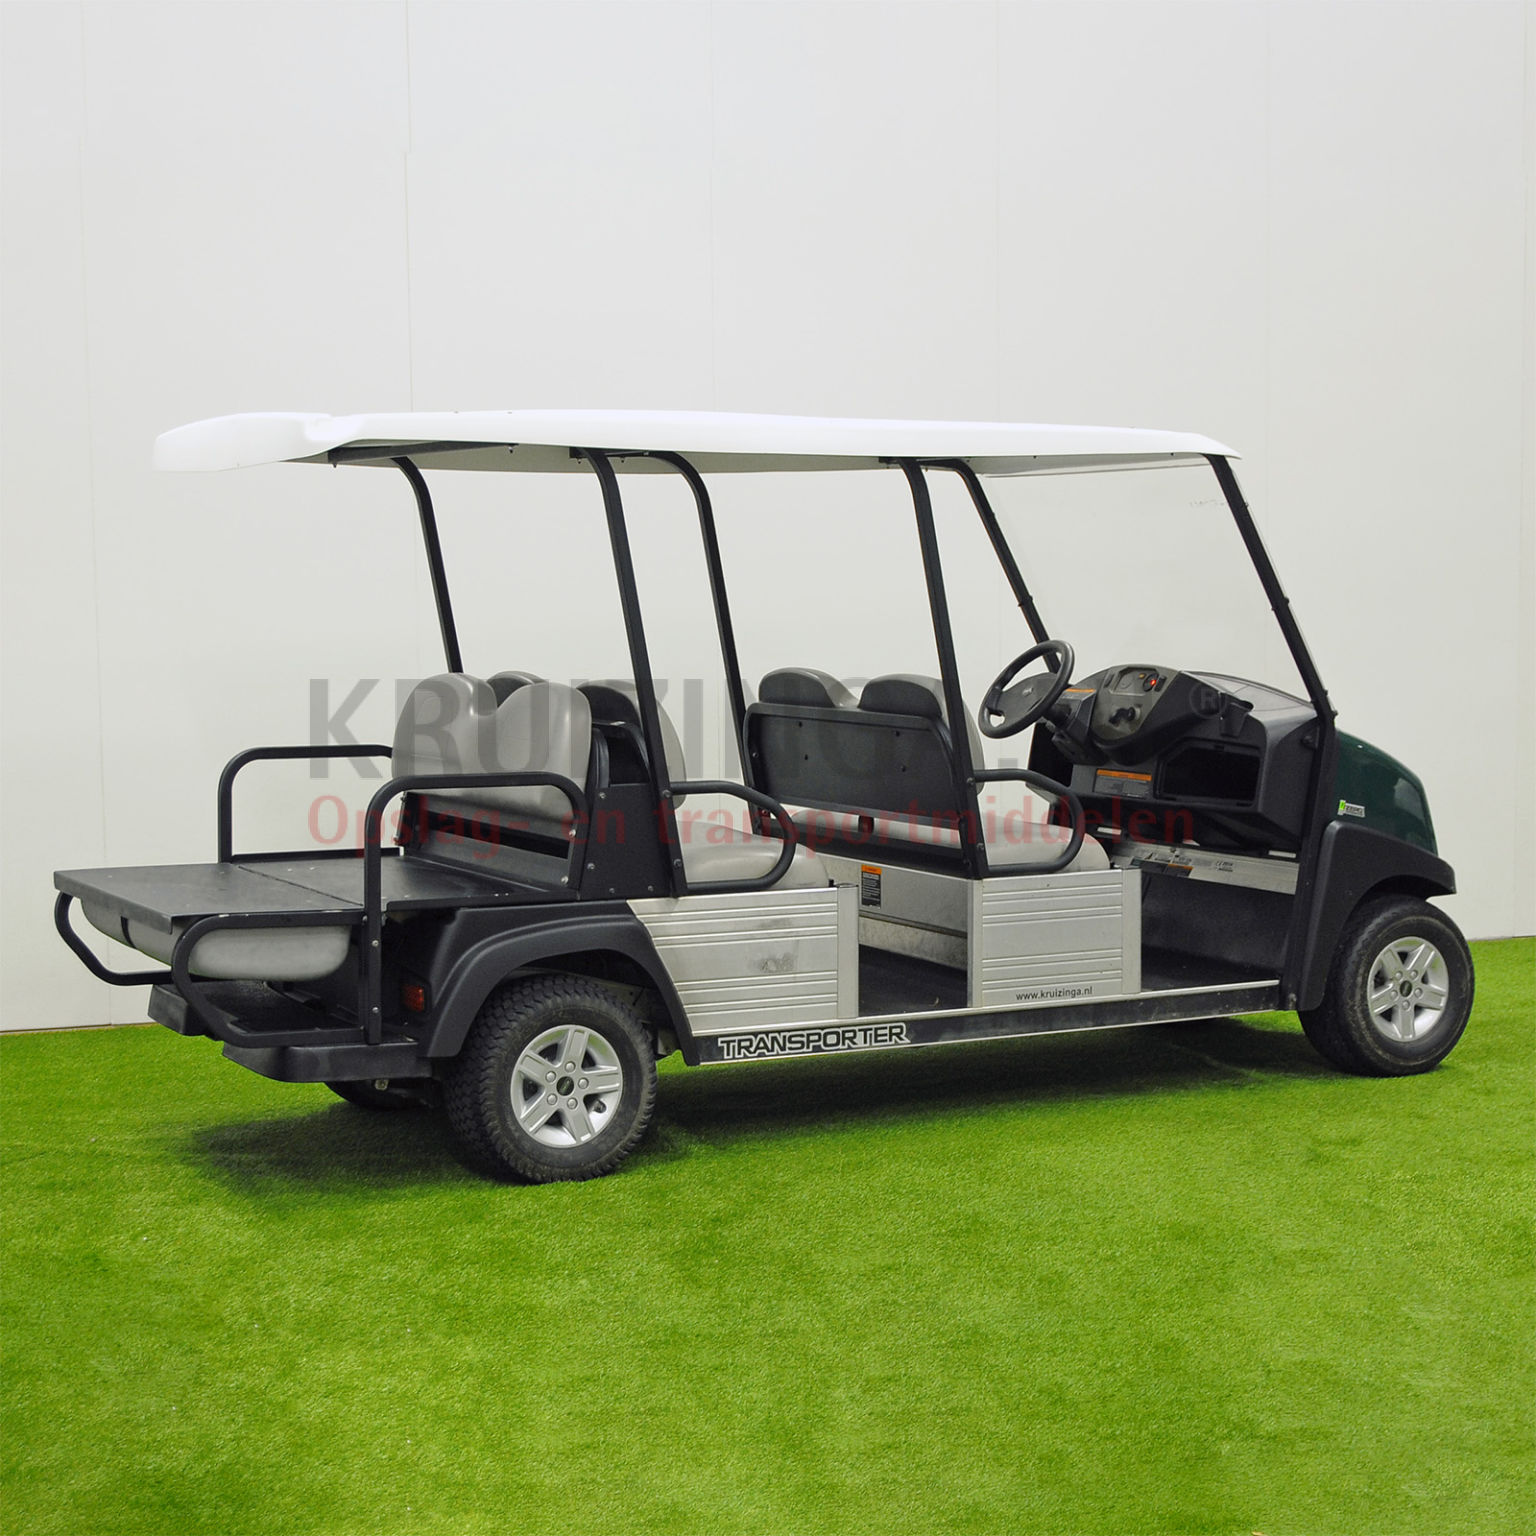 golf cart club car transporter pour 6 personnes lectrique occasion. Black Bedroom Furniture Sets. Home Design Ideas